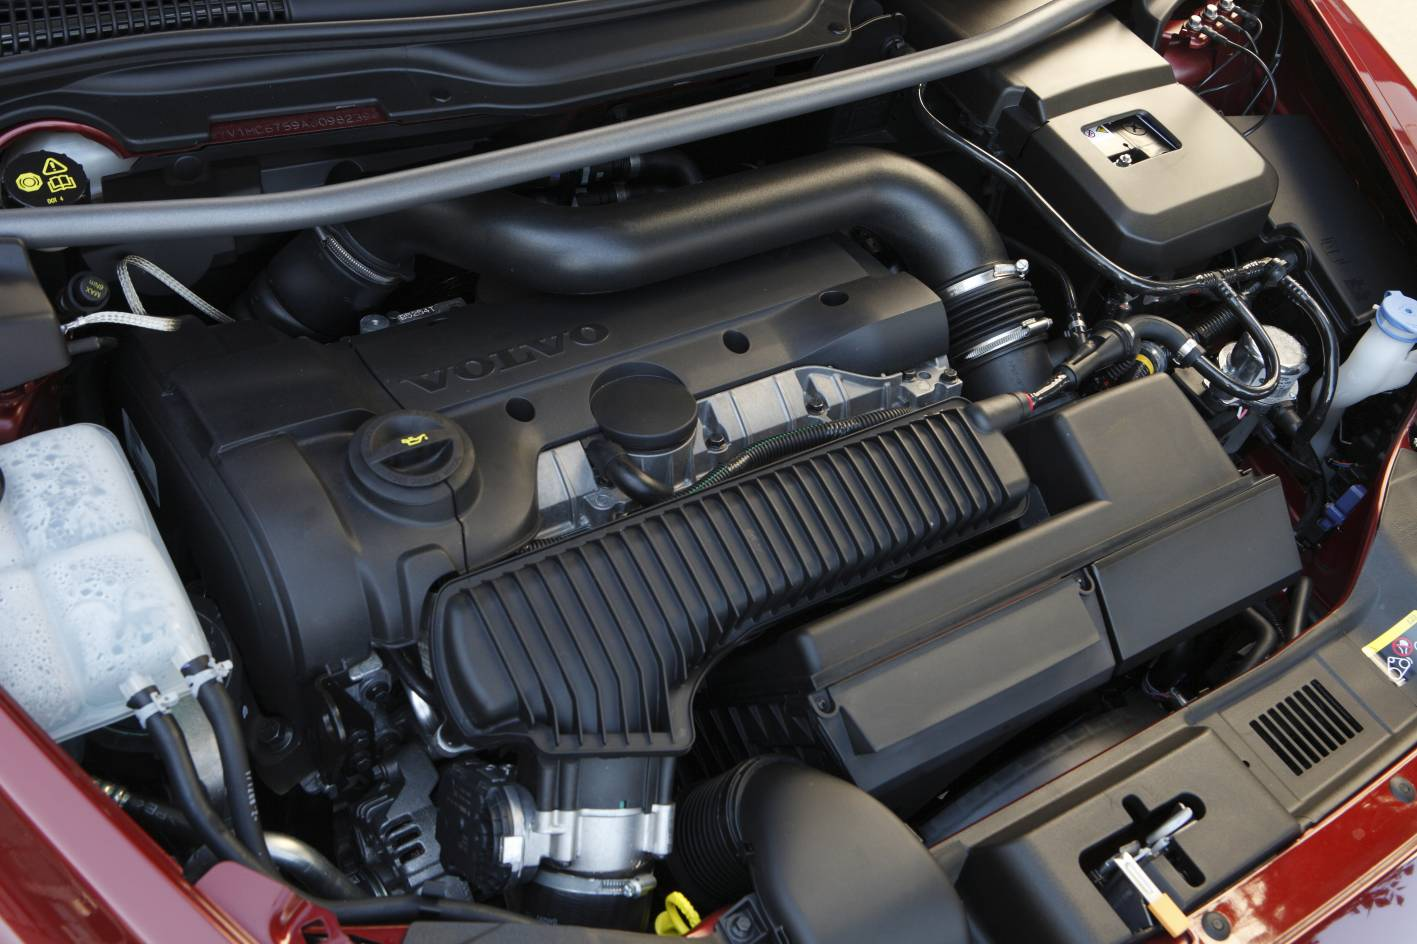 Volvo C70 engine #4